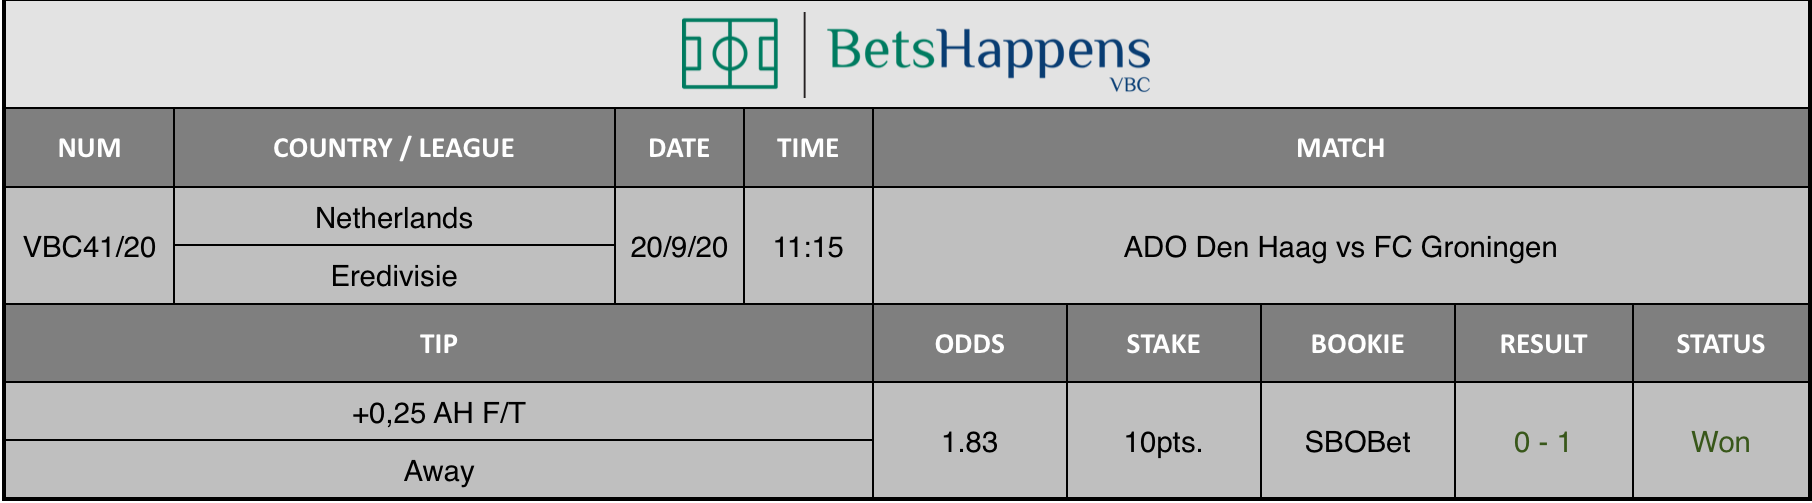 Results of our advice for the ADO Den Haag vs FC Groningen match in which +0.25 AH F / T Away is recommended.